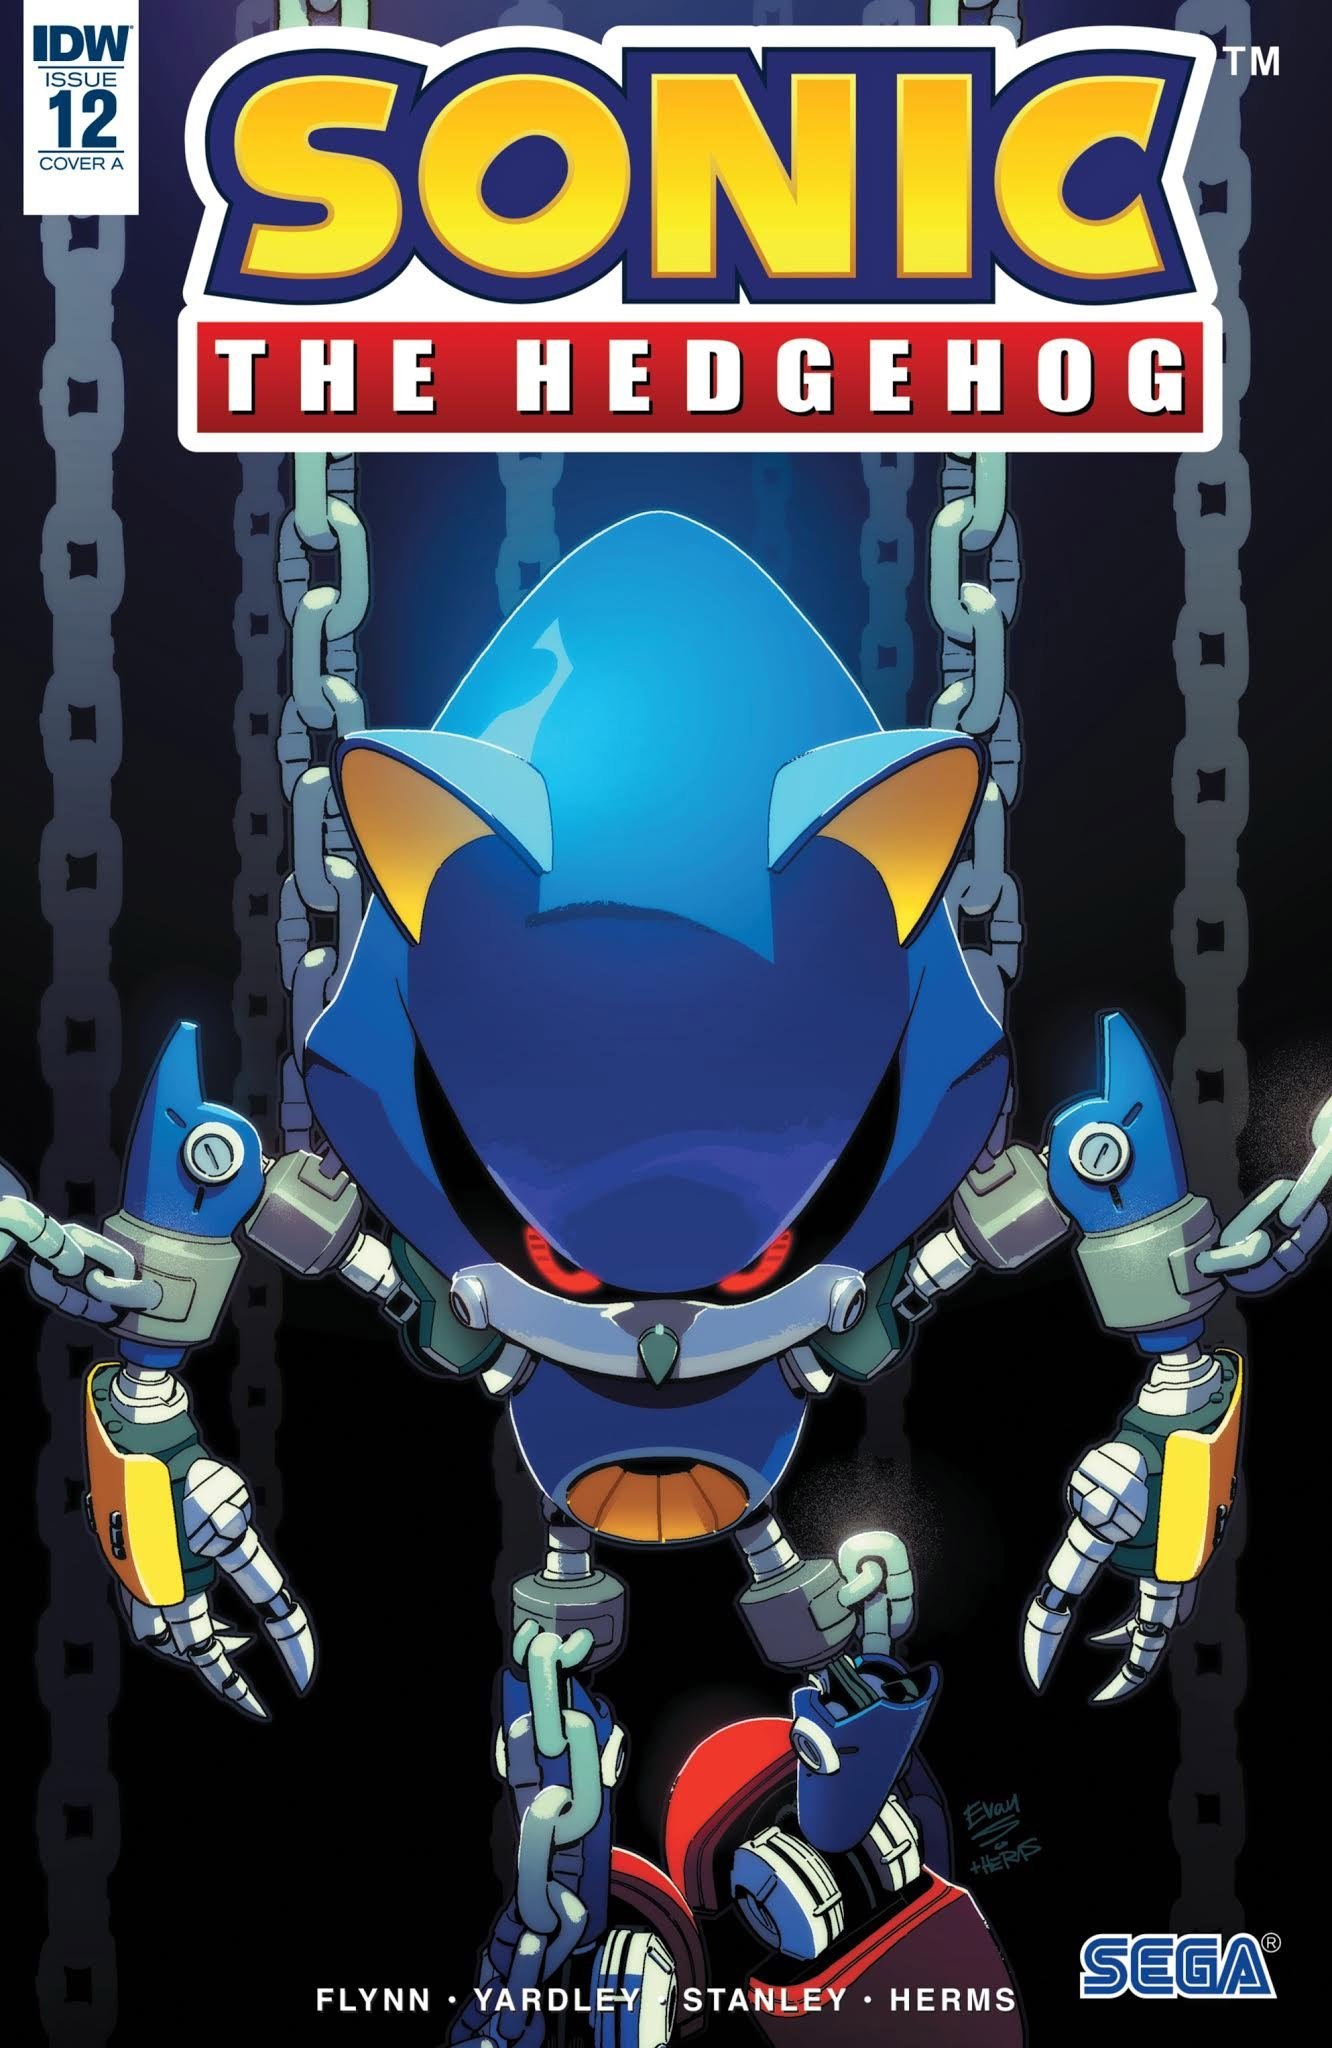 Sonic the Hedgehog 012 (December 2018) (cover a)